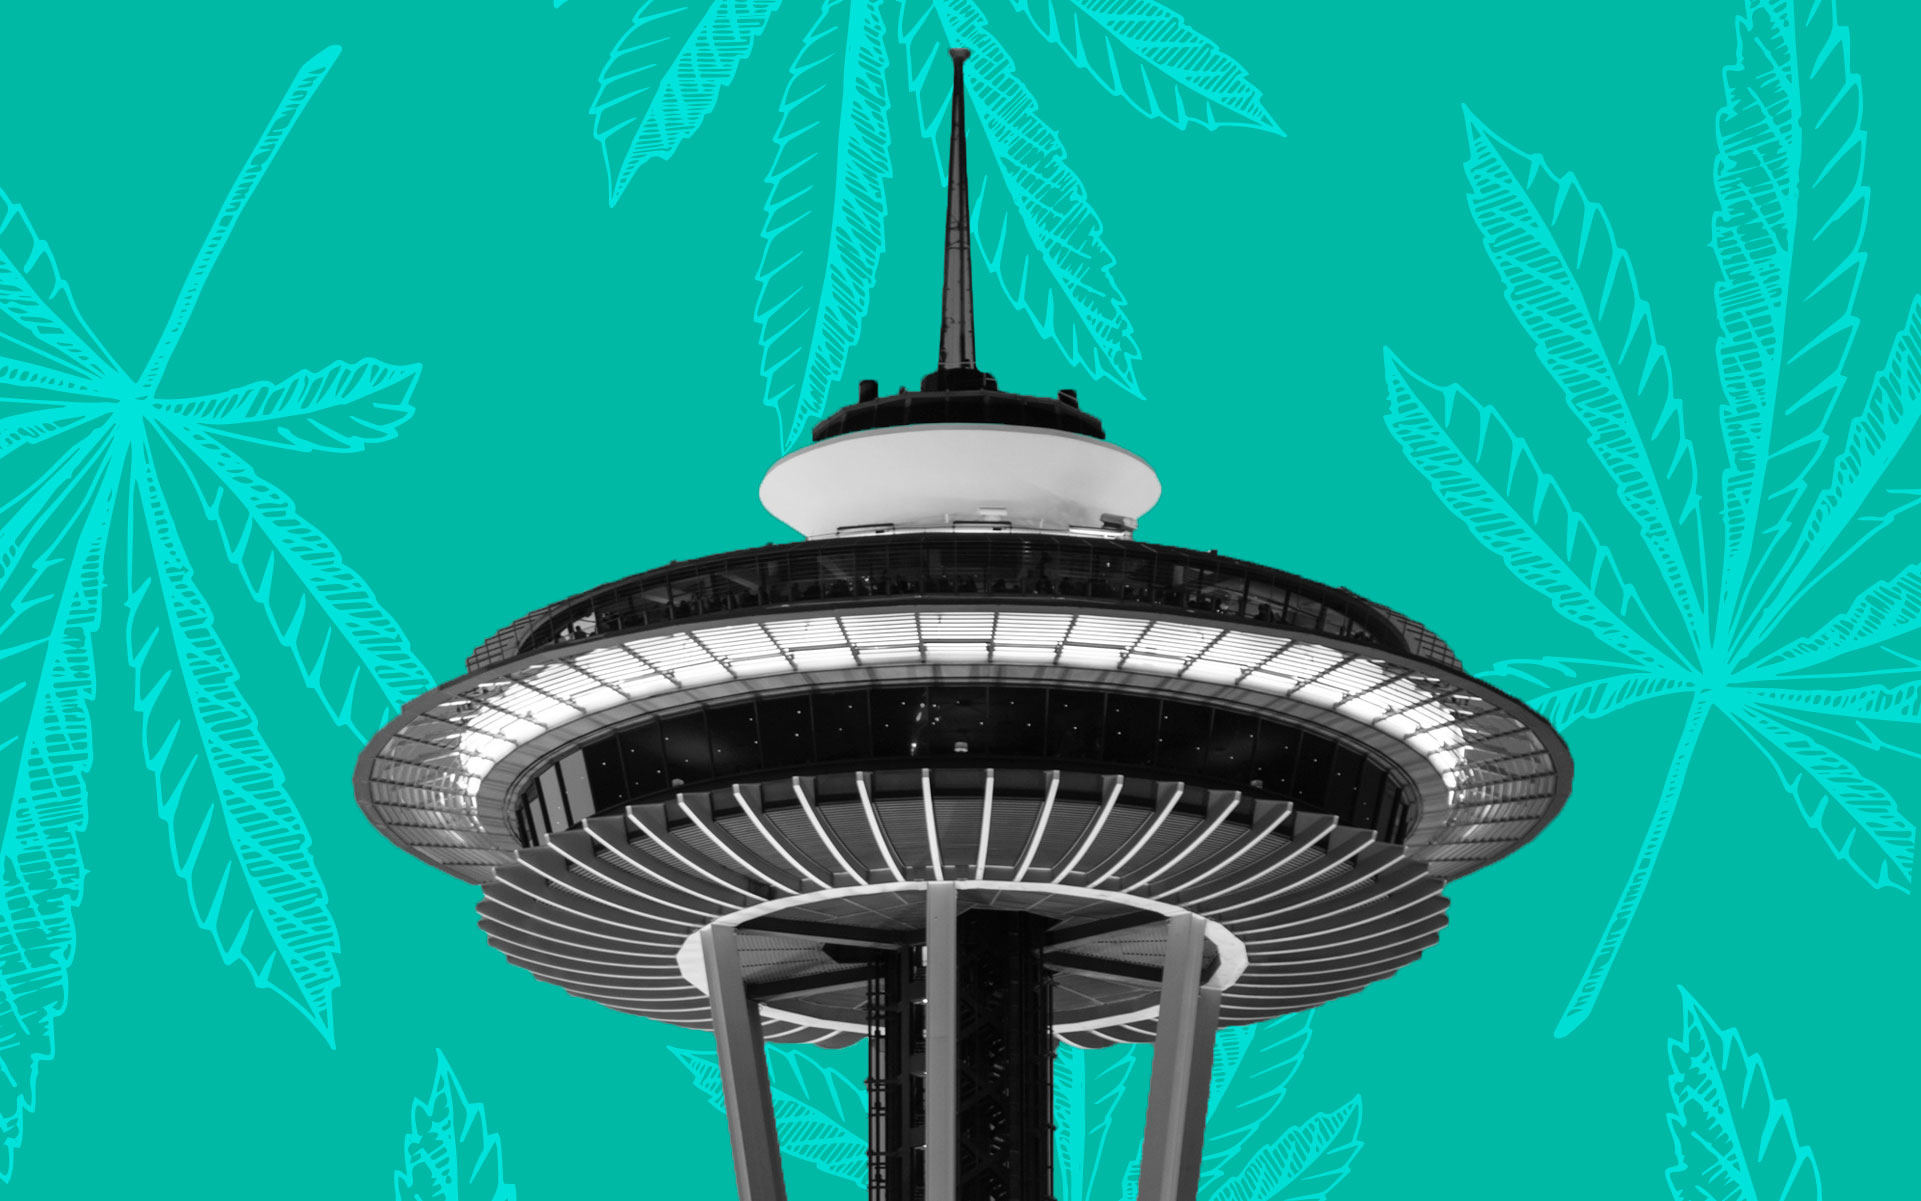 Seattle area is number one in global marijuana use, study finds.